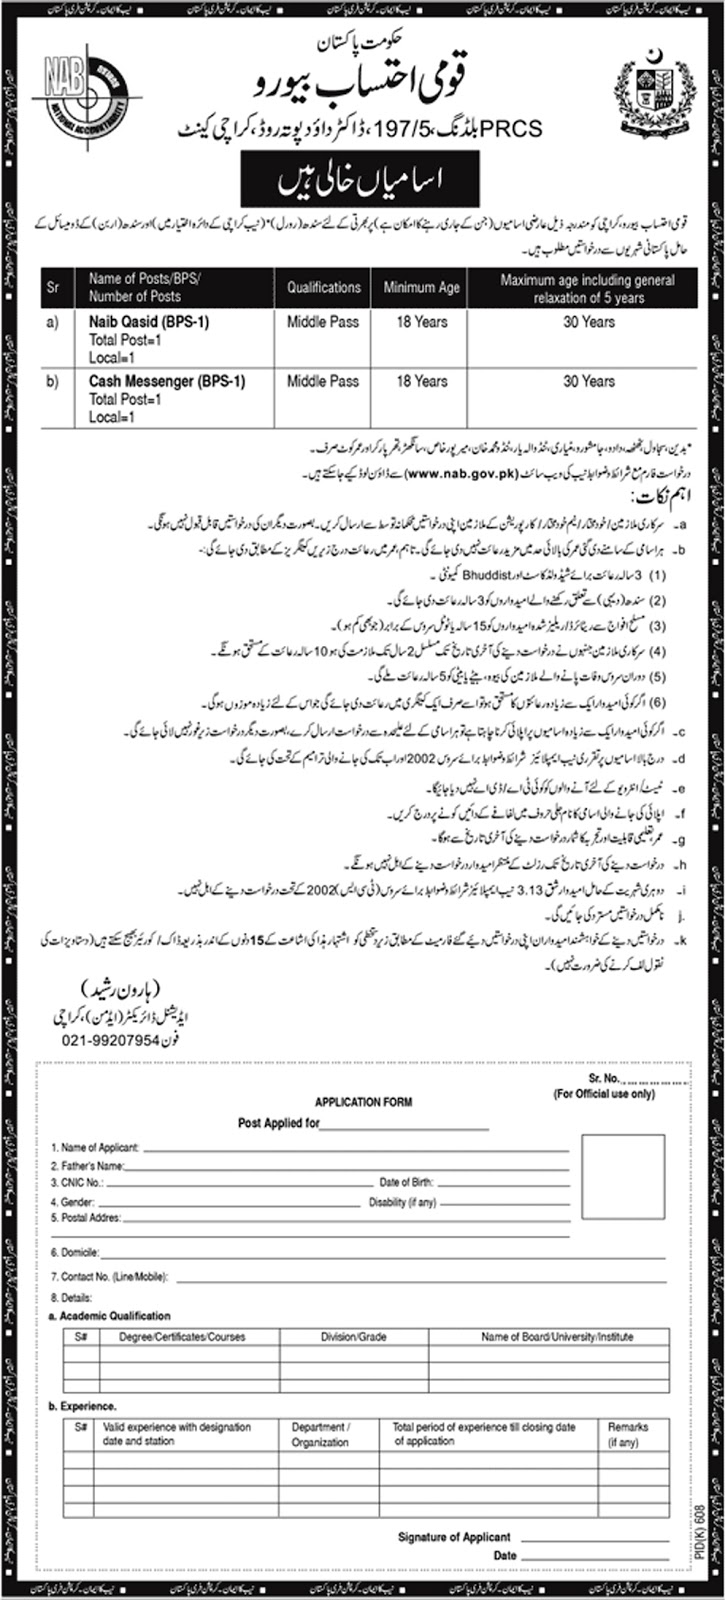 Advertisement for Jobs In NAB